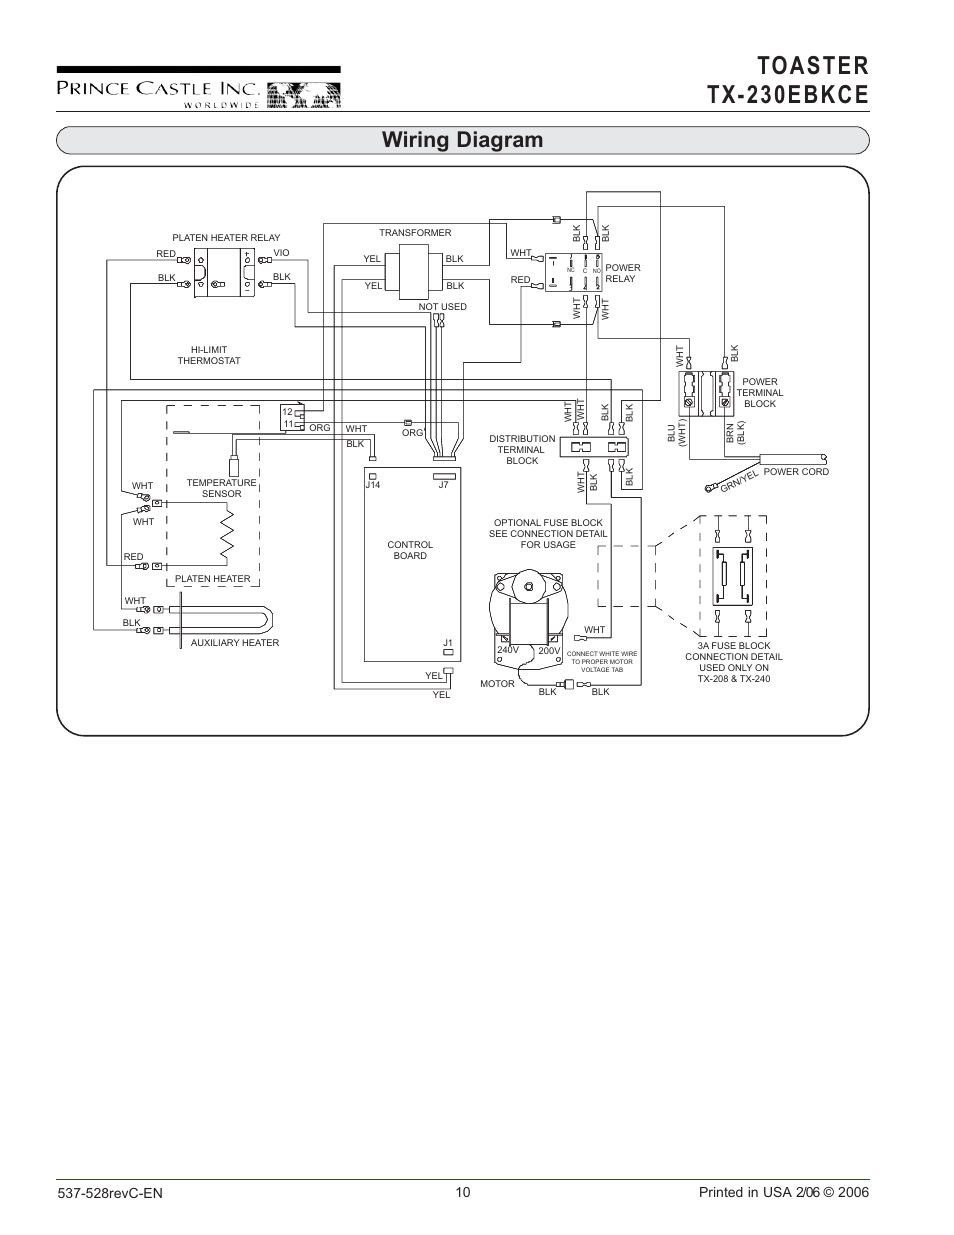 Toaster tx230 ebkce     Wiring       diagram      Prince Castle TX